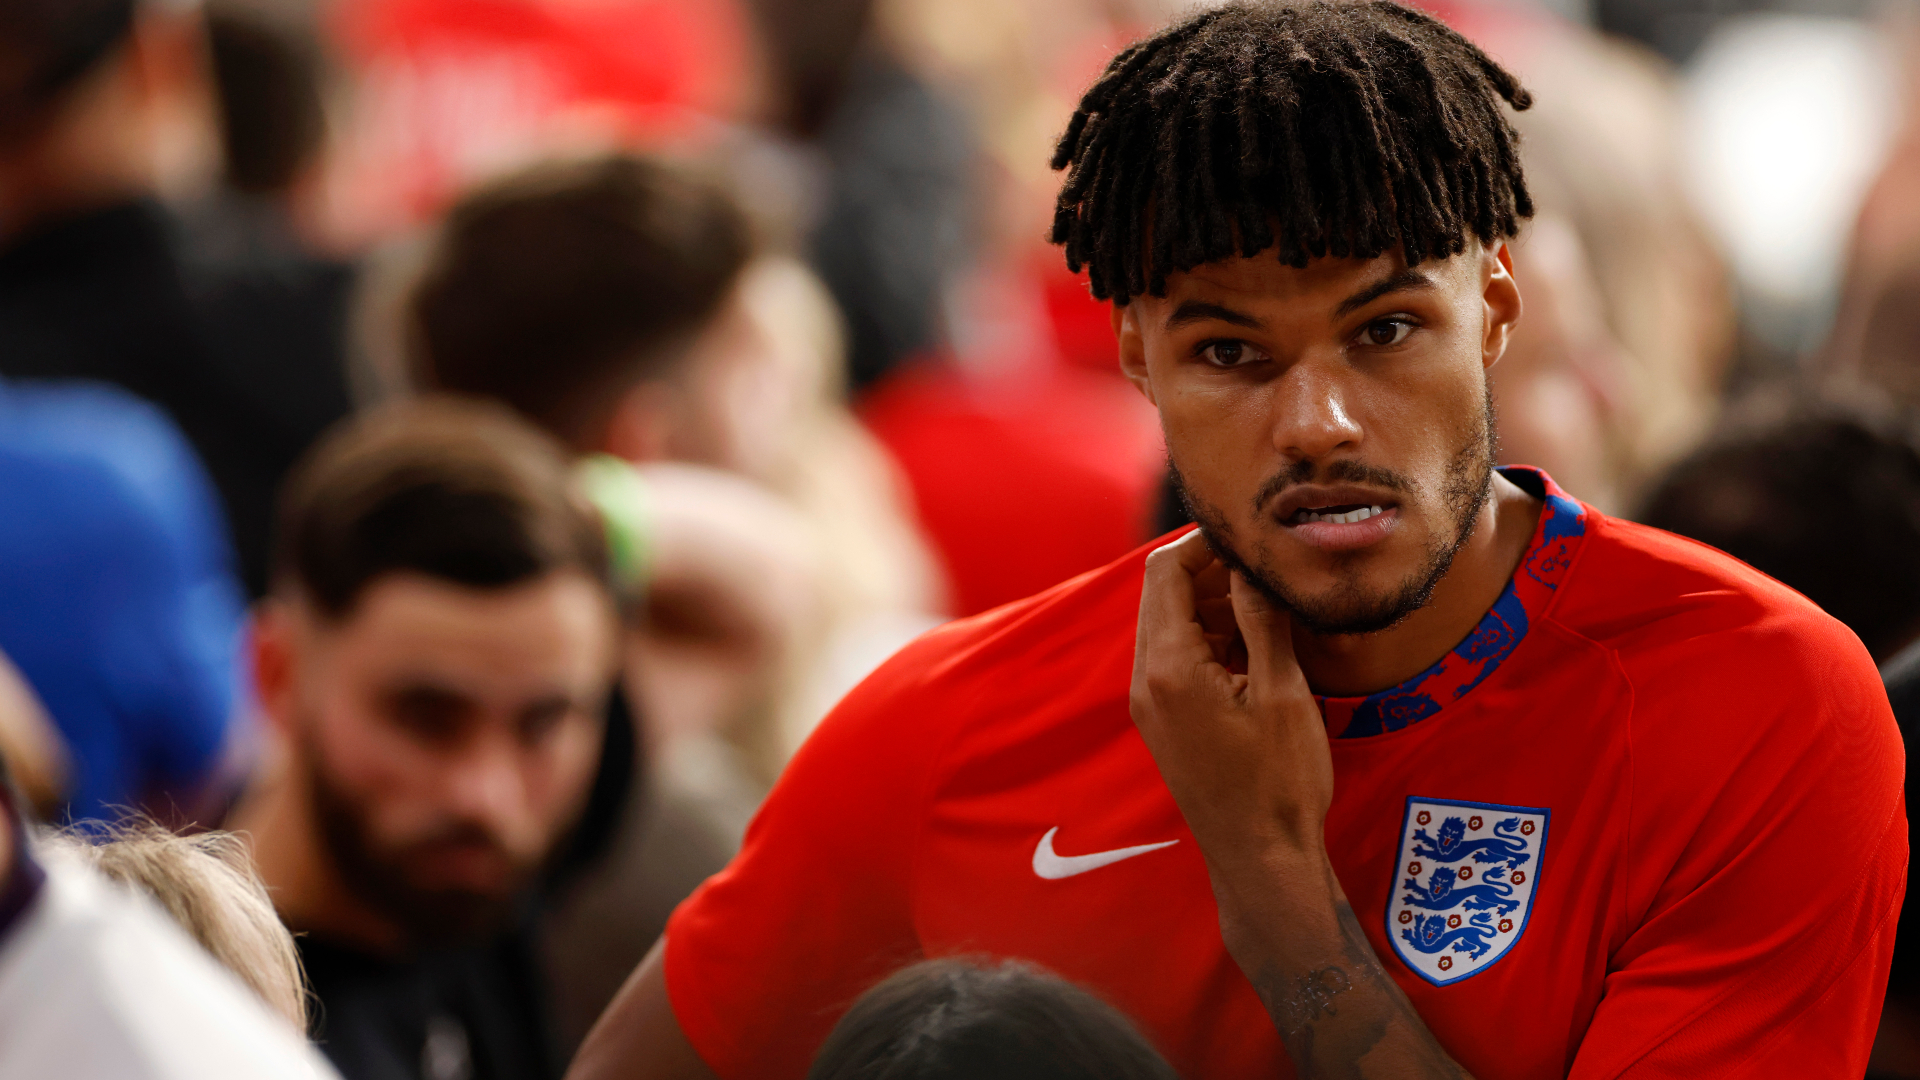 England defender Mings explains how his mental health 'plummeted' due to Euro 2020 criticism